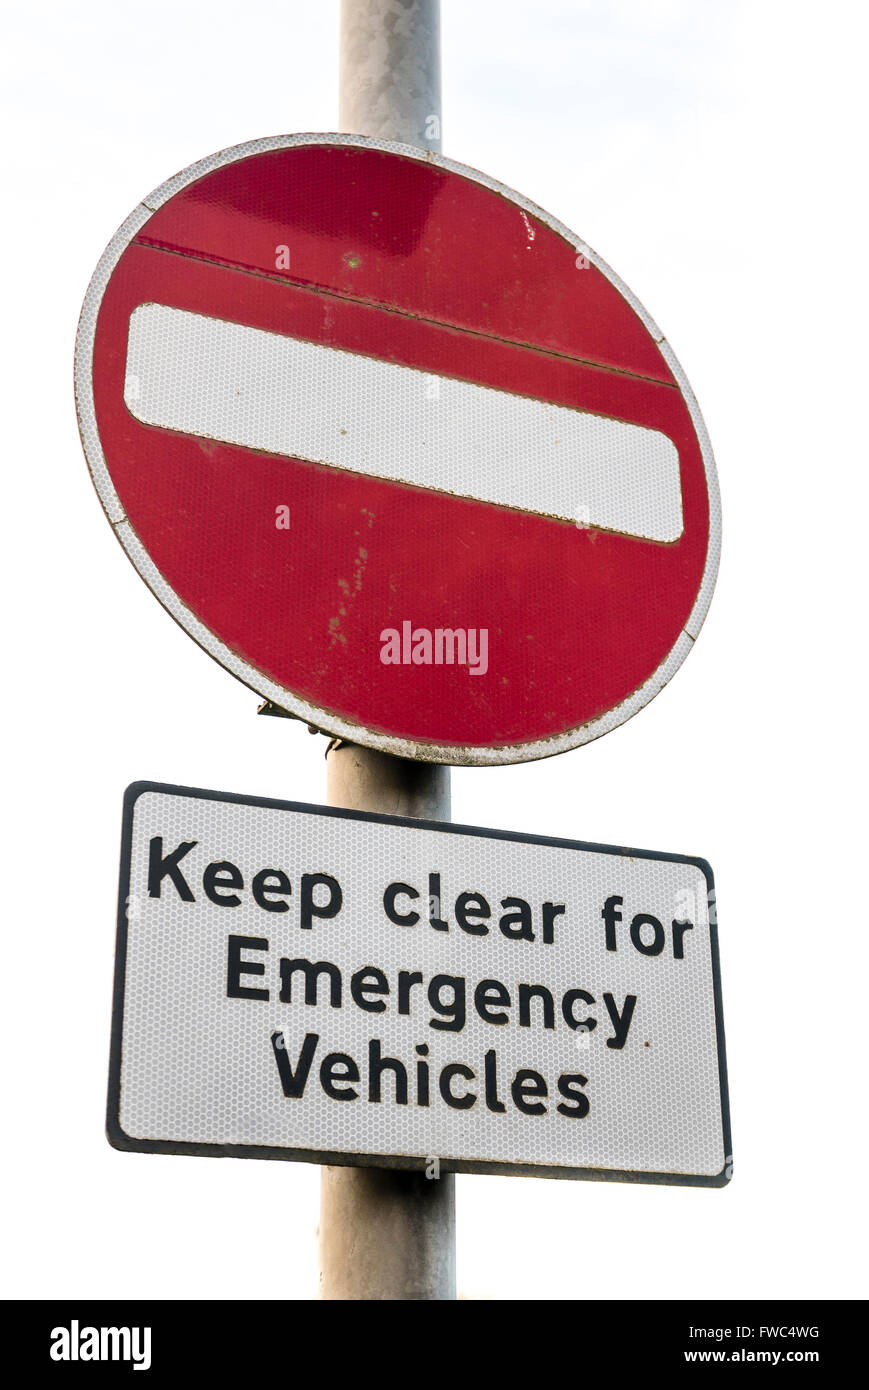 No entry road sign warning motorists to keep clear for emergency vehicles - Stock Image